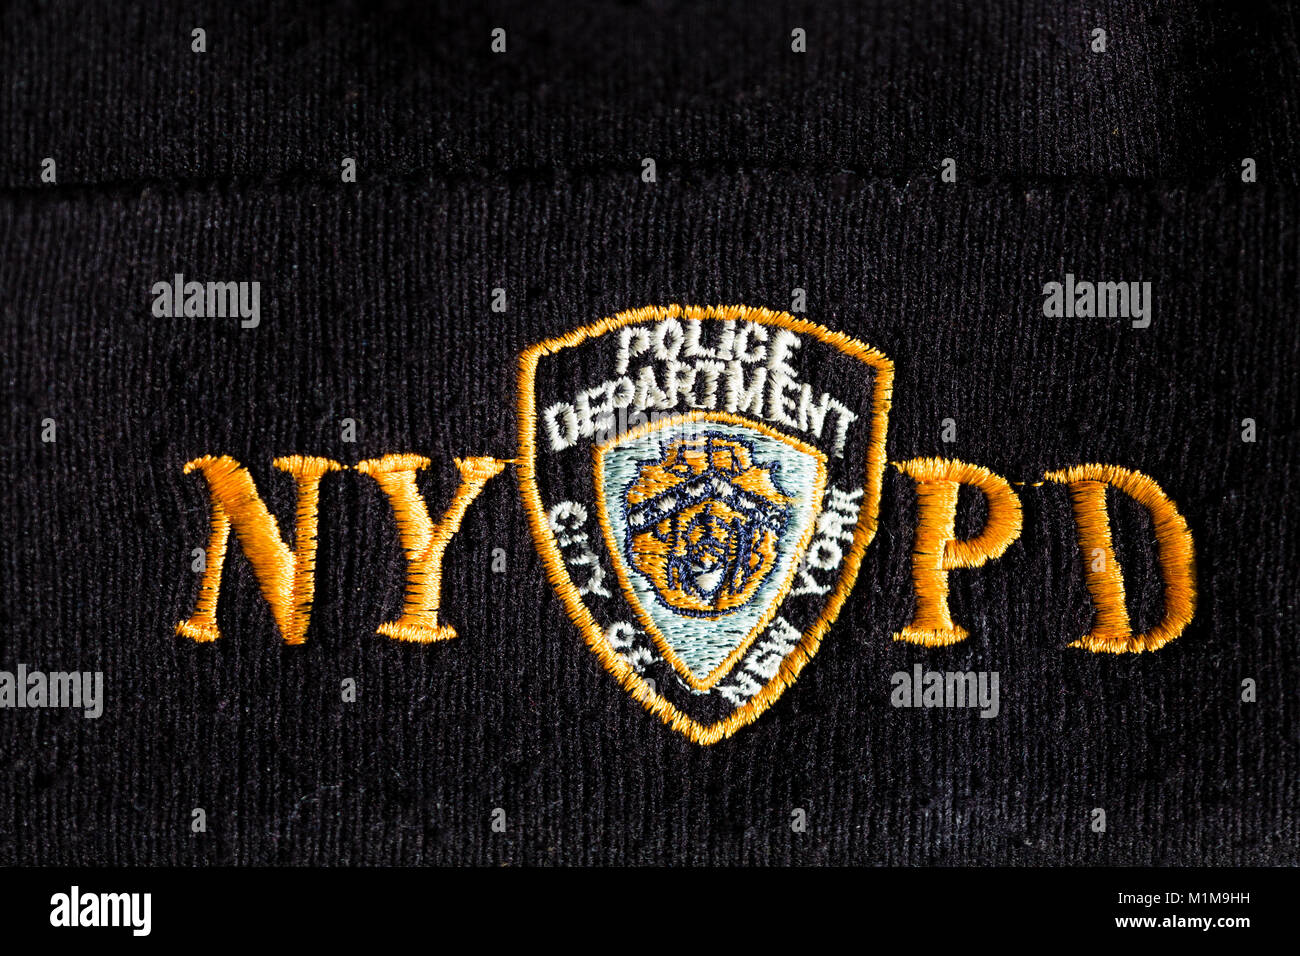 NYPD badge on